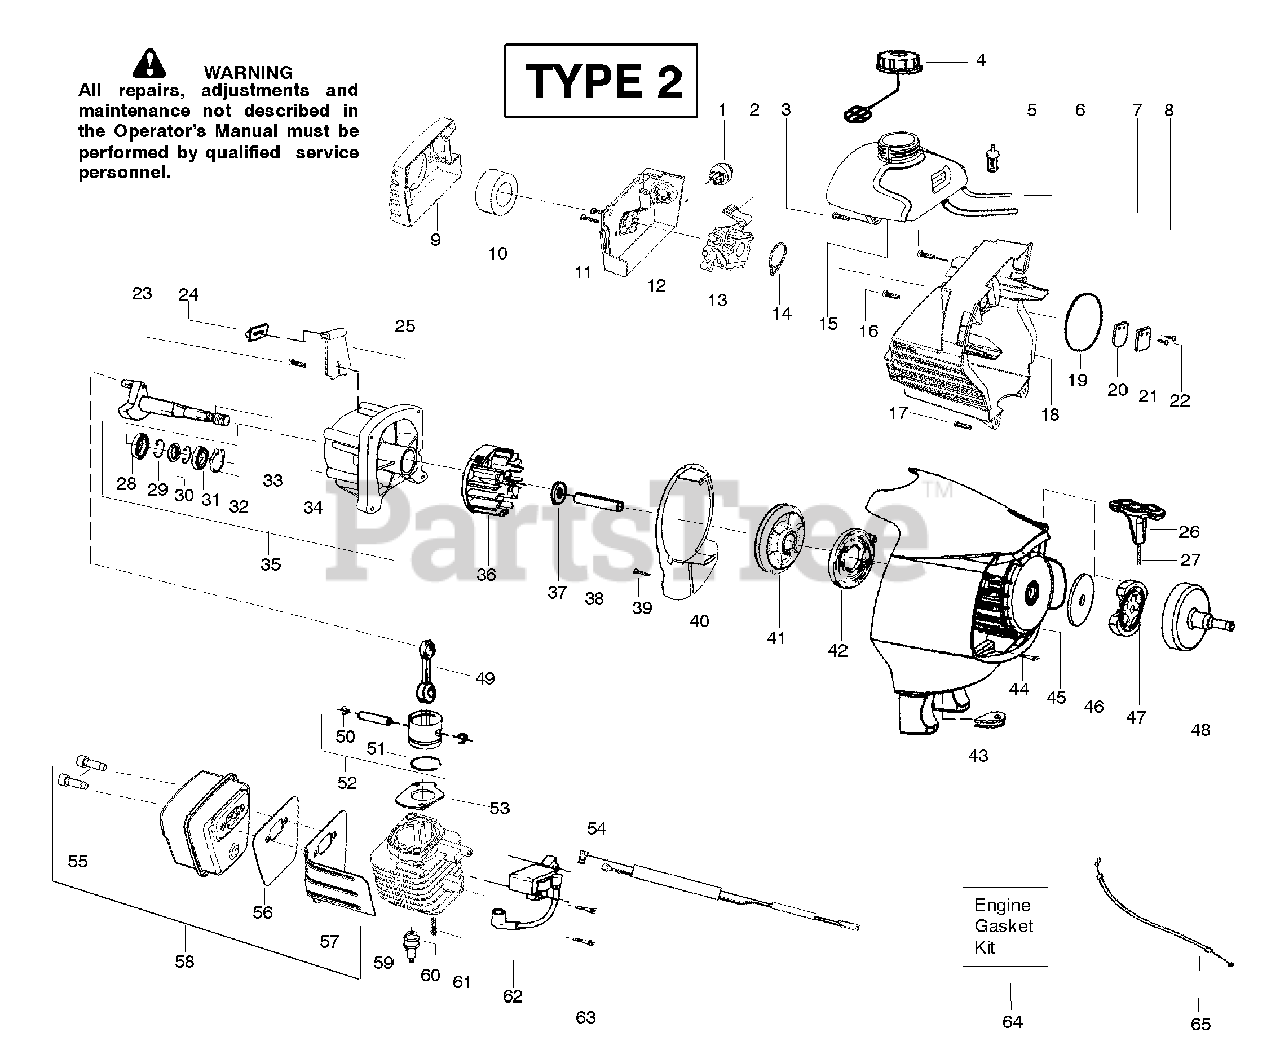 Poulan Pro Parts On The Engine Assembly Type 2 Diagram For